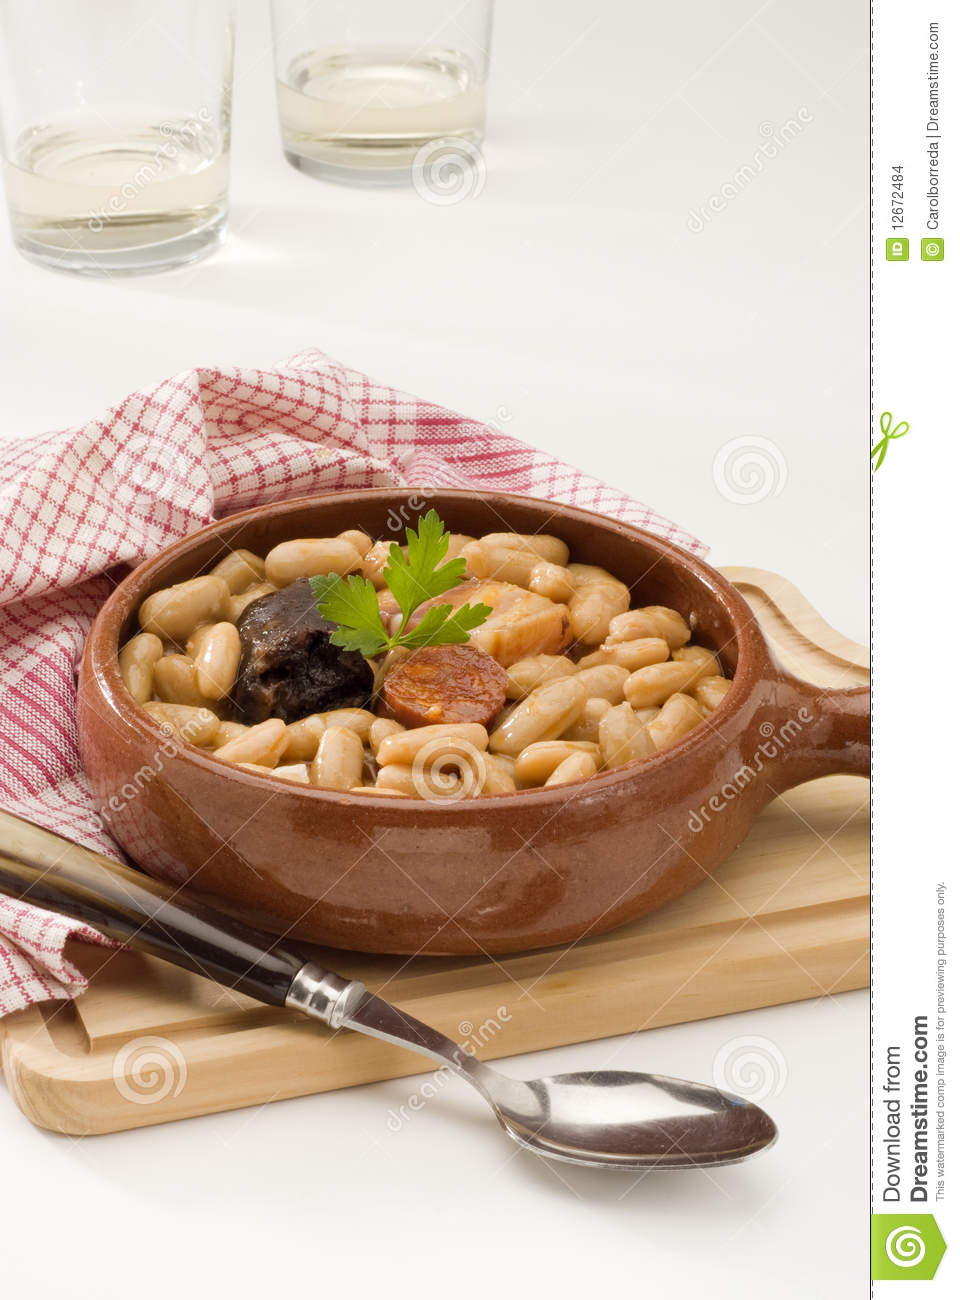 Spanish cuisine asturian ham and beans stock images for Asturian cuisine